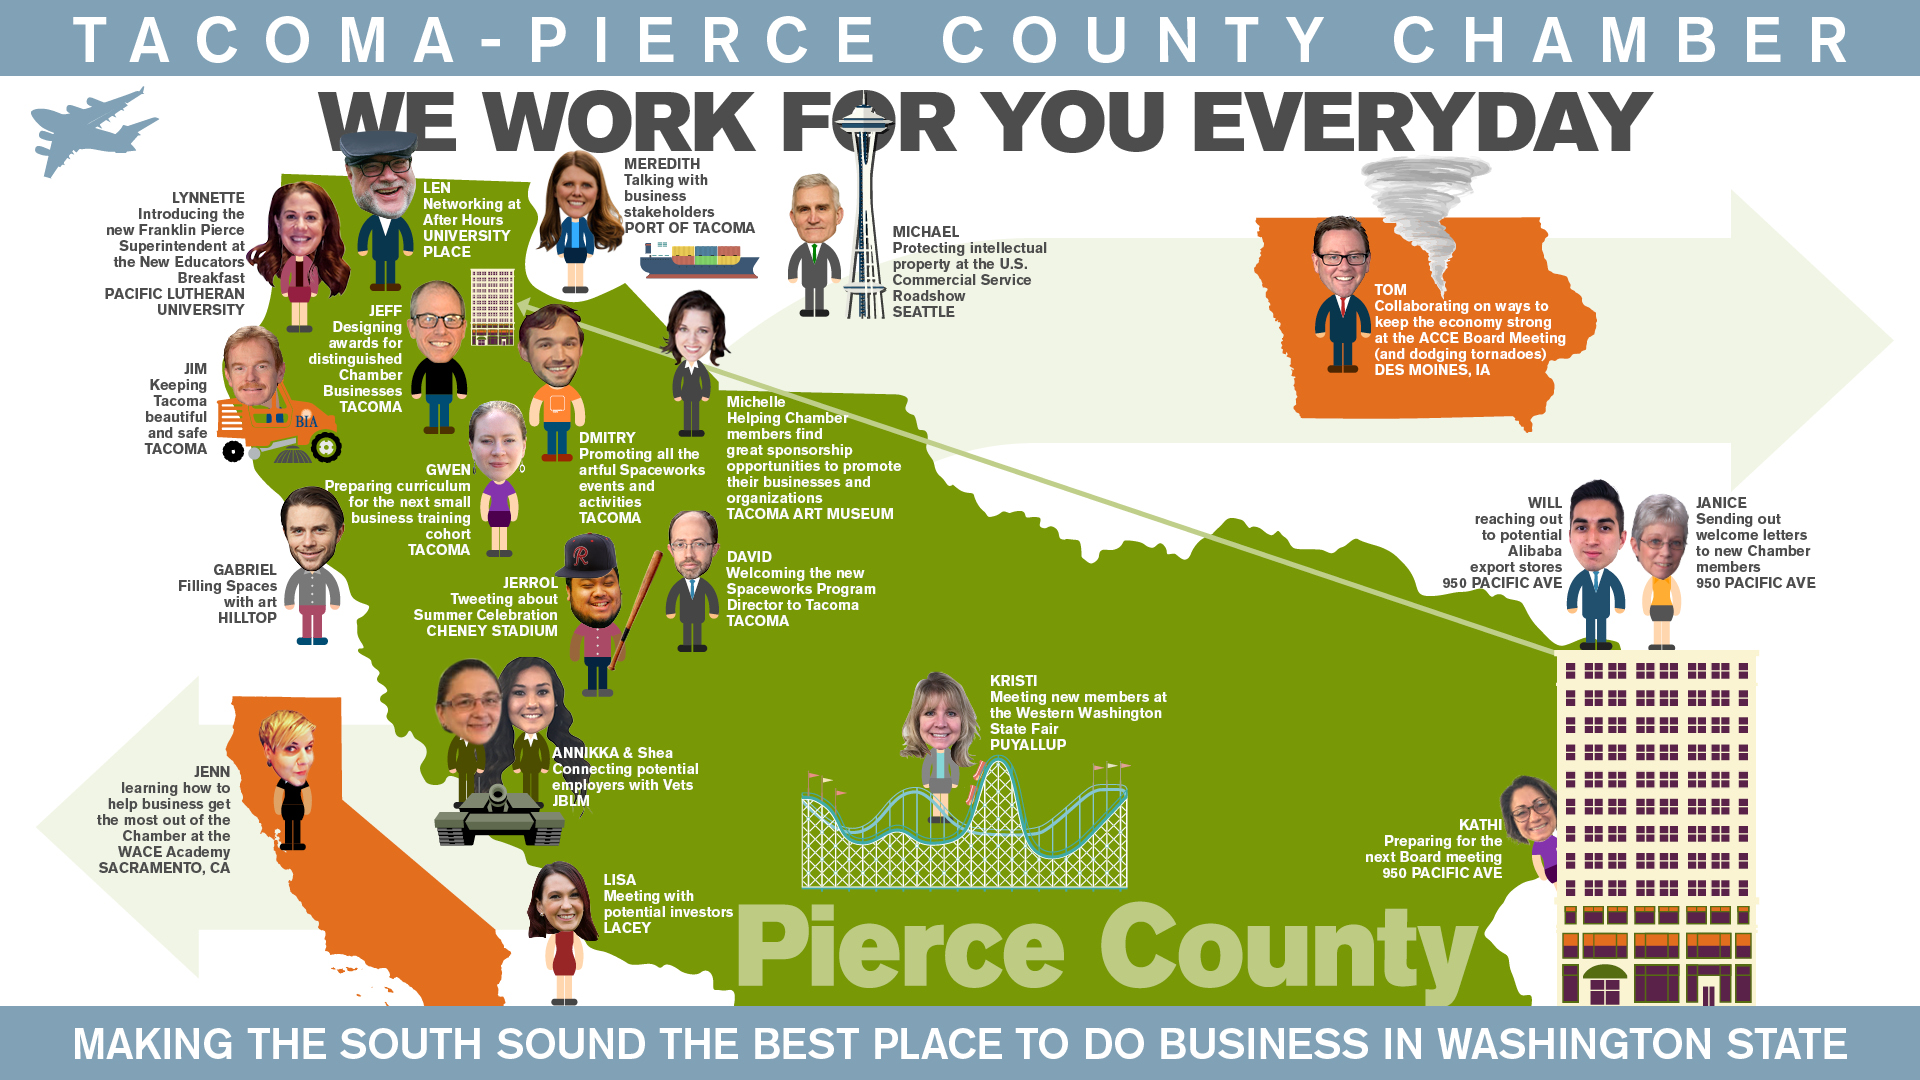 We work for you everyday graphic Tacoma-Pierce County Chamber